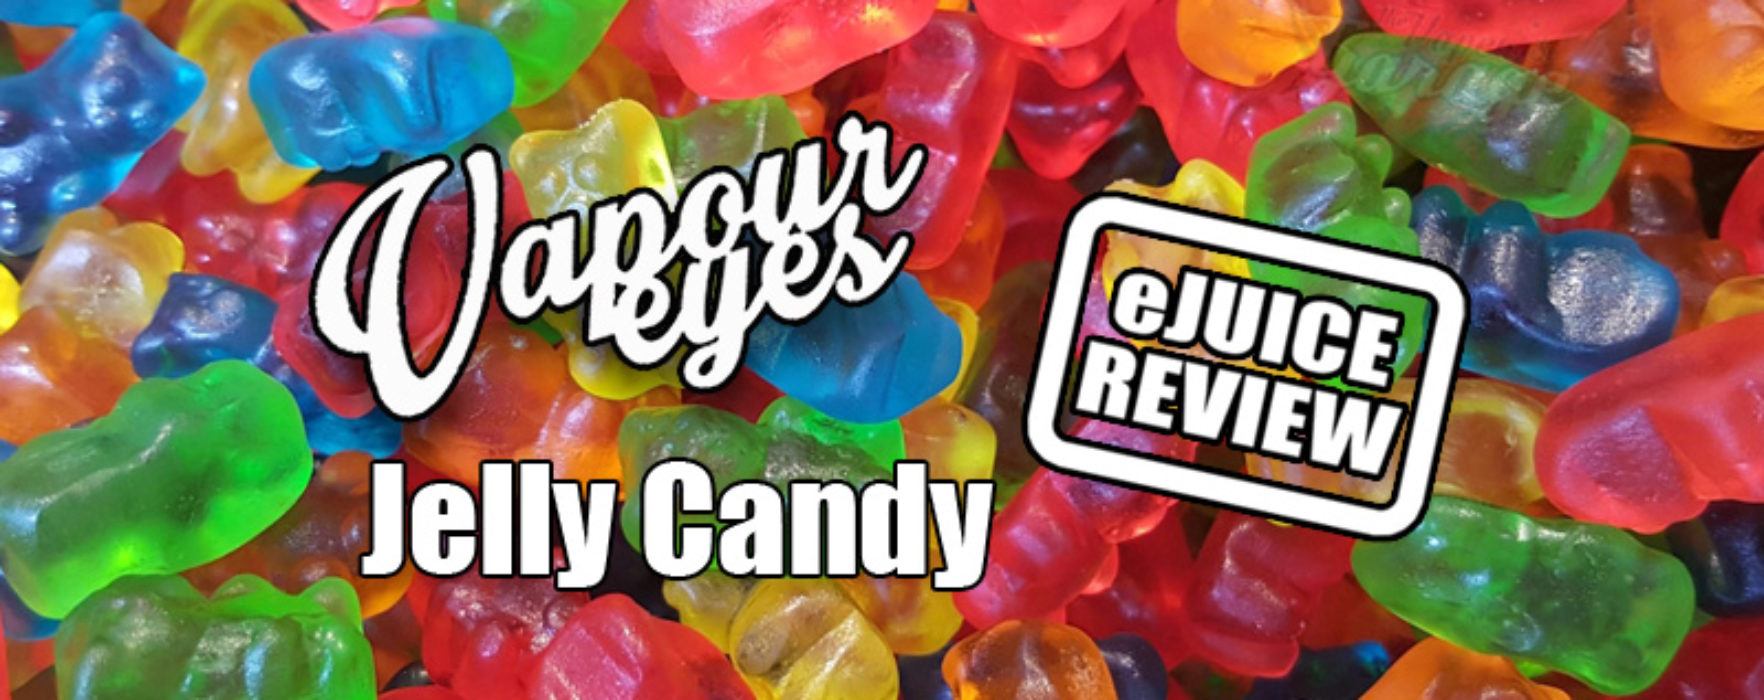 eLiquid Review: Jelly Candy by VapourEyes